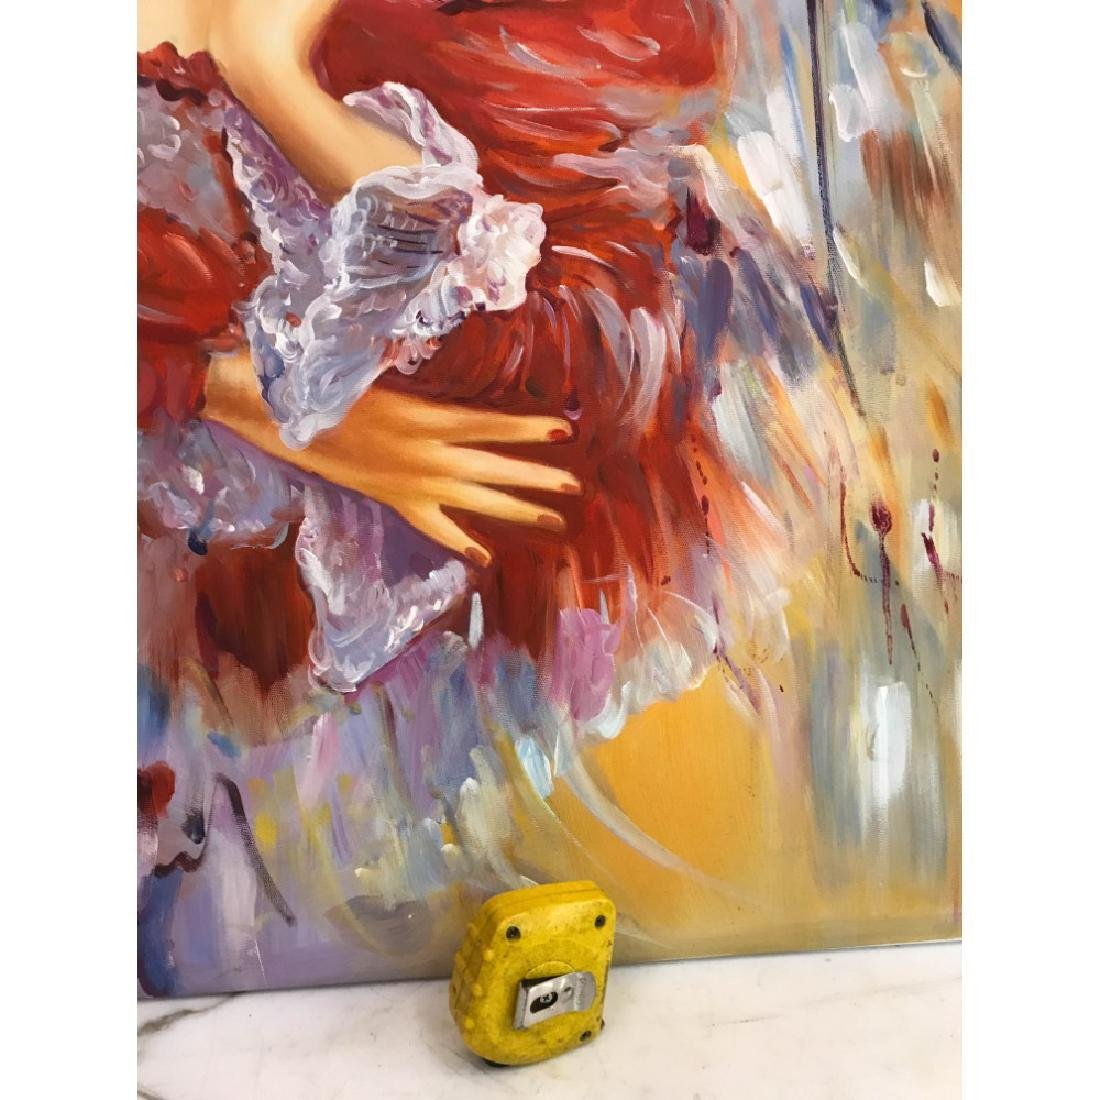 Oil on Canvas of Woman Dreaming in Red - 8